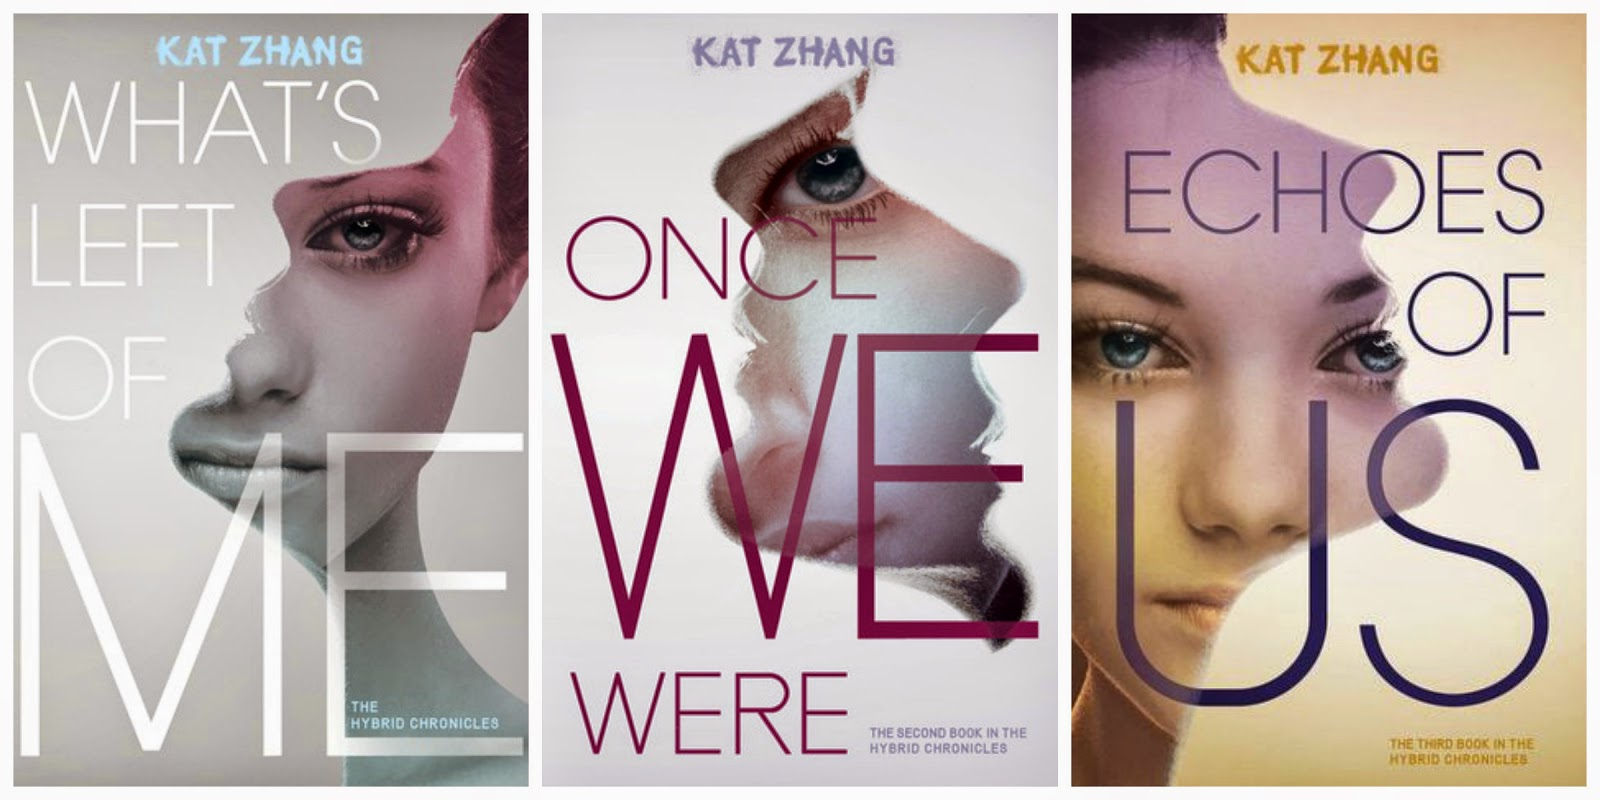 What's Left of Me Once We Were Echoes of Us book covers